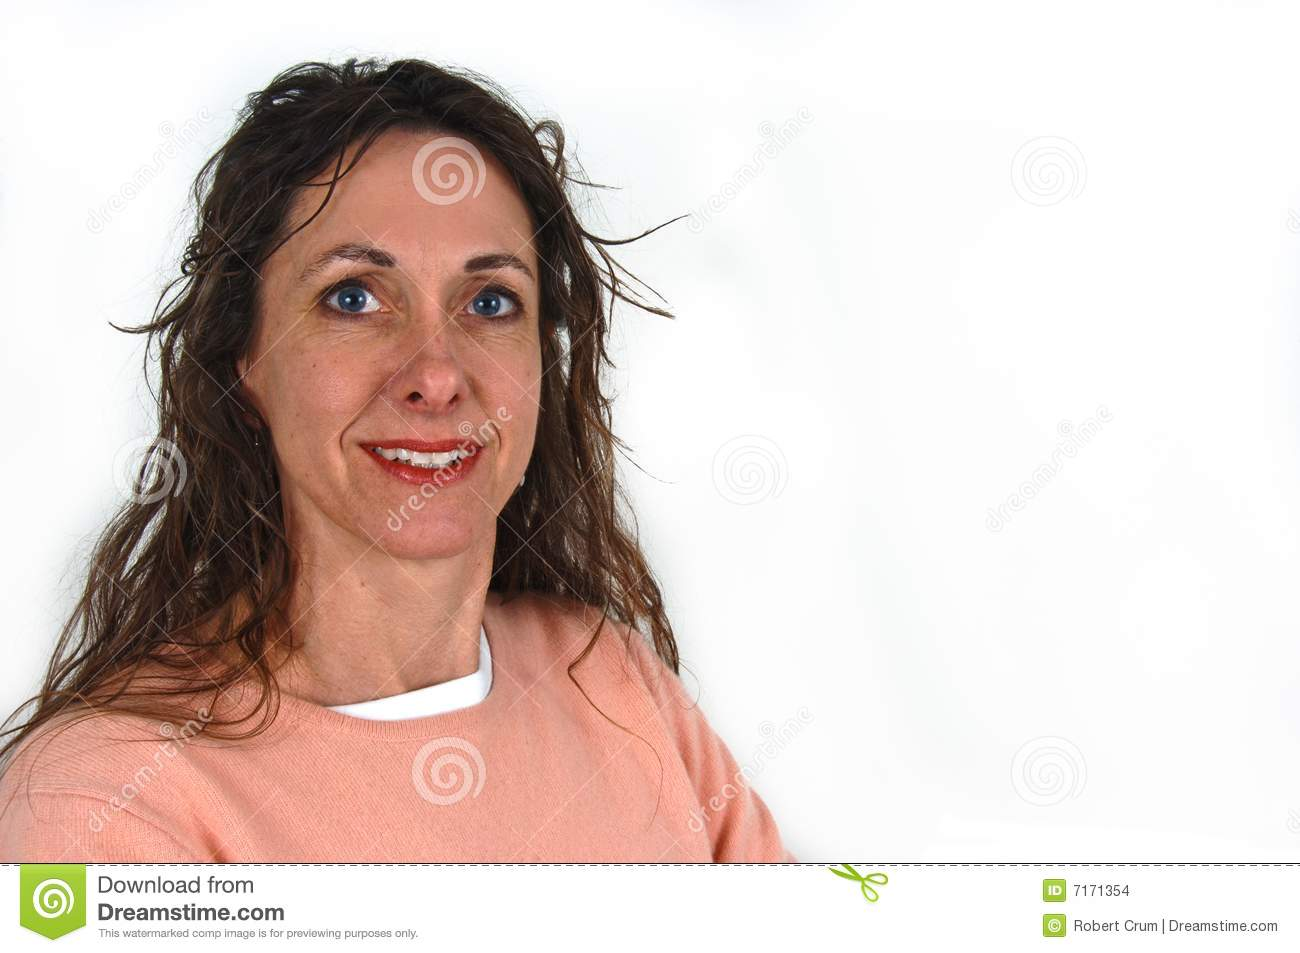 middle aged women dating website Download middle aged woman images and photos over 62,030 middle aged woman pictures to choose from, with no signup needed download in under 30 seconds.